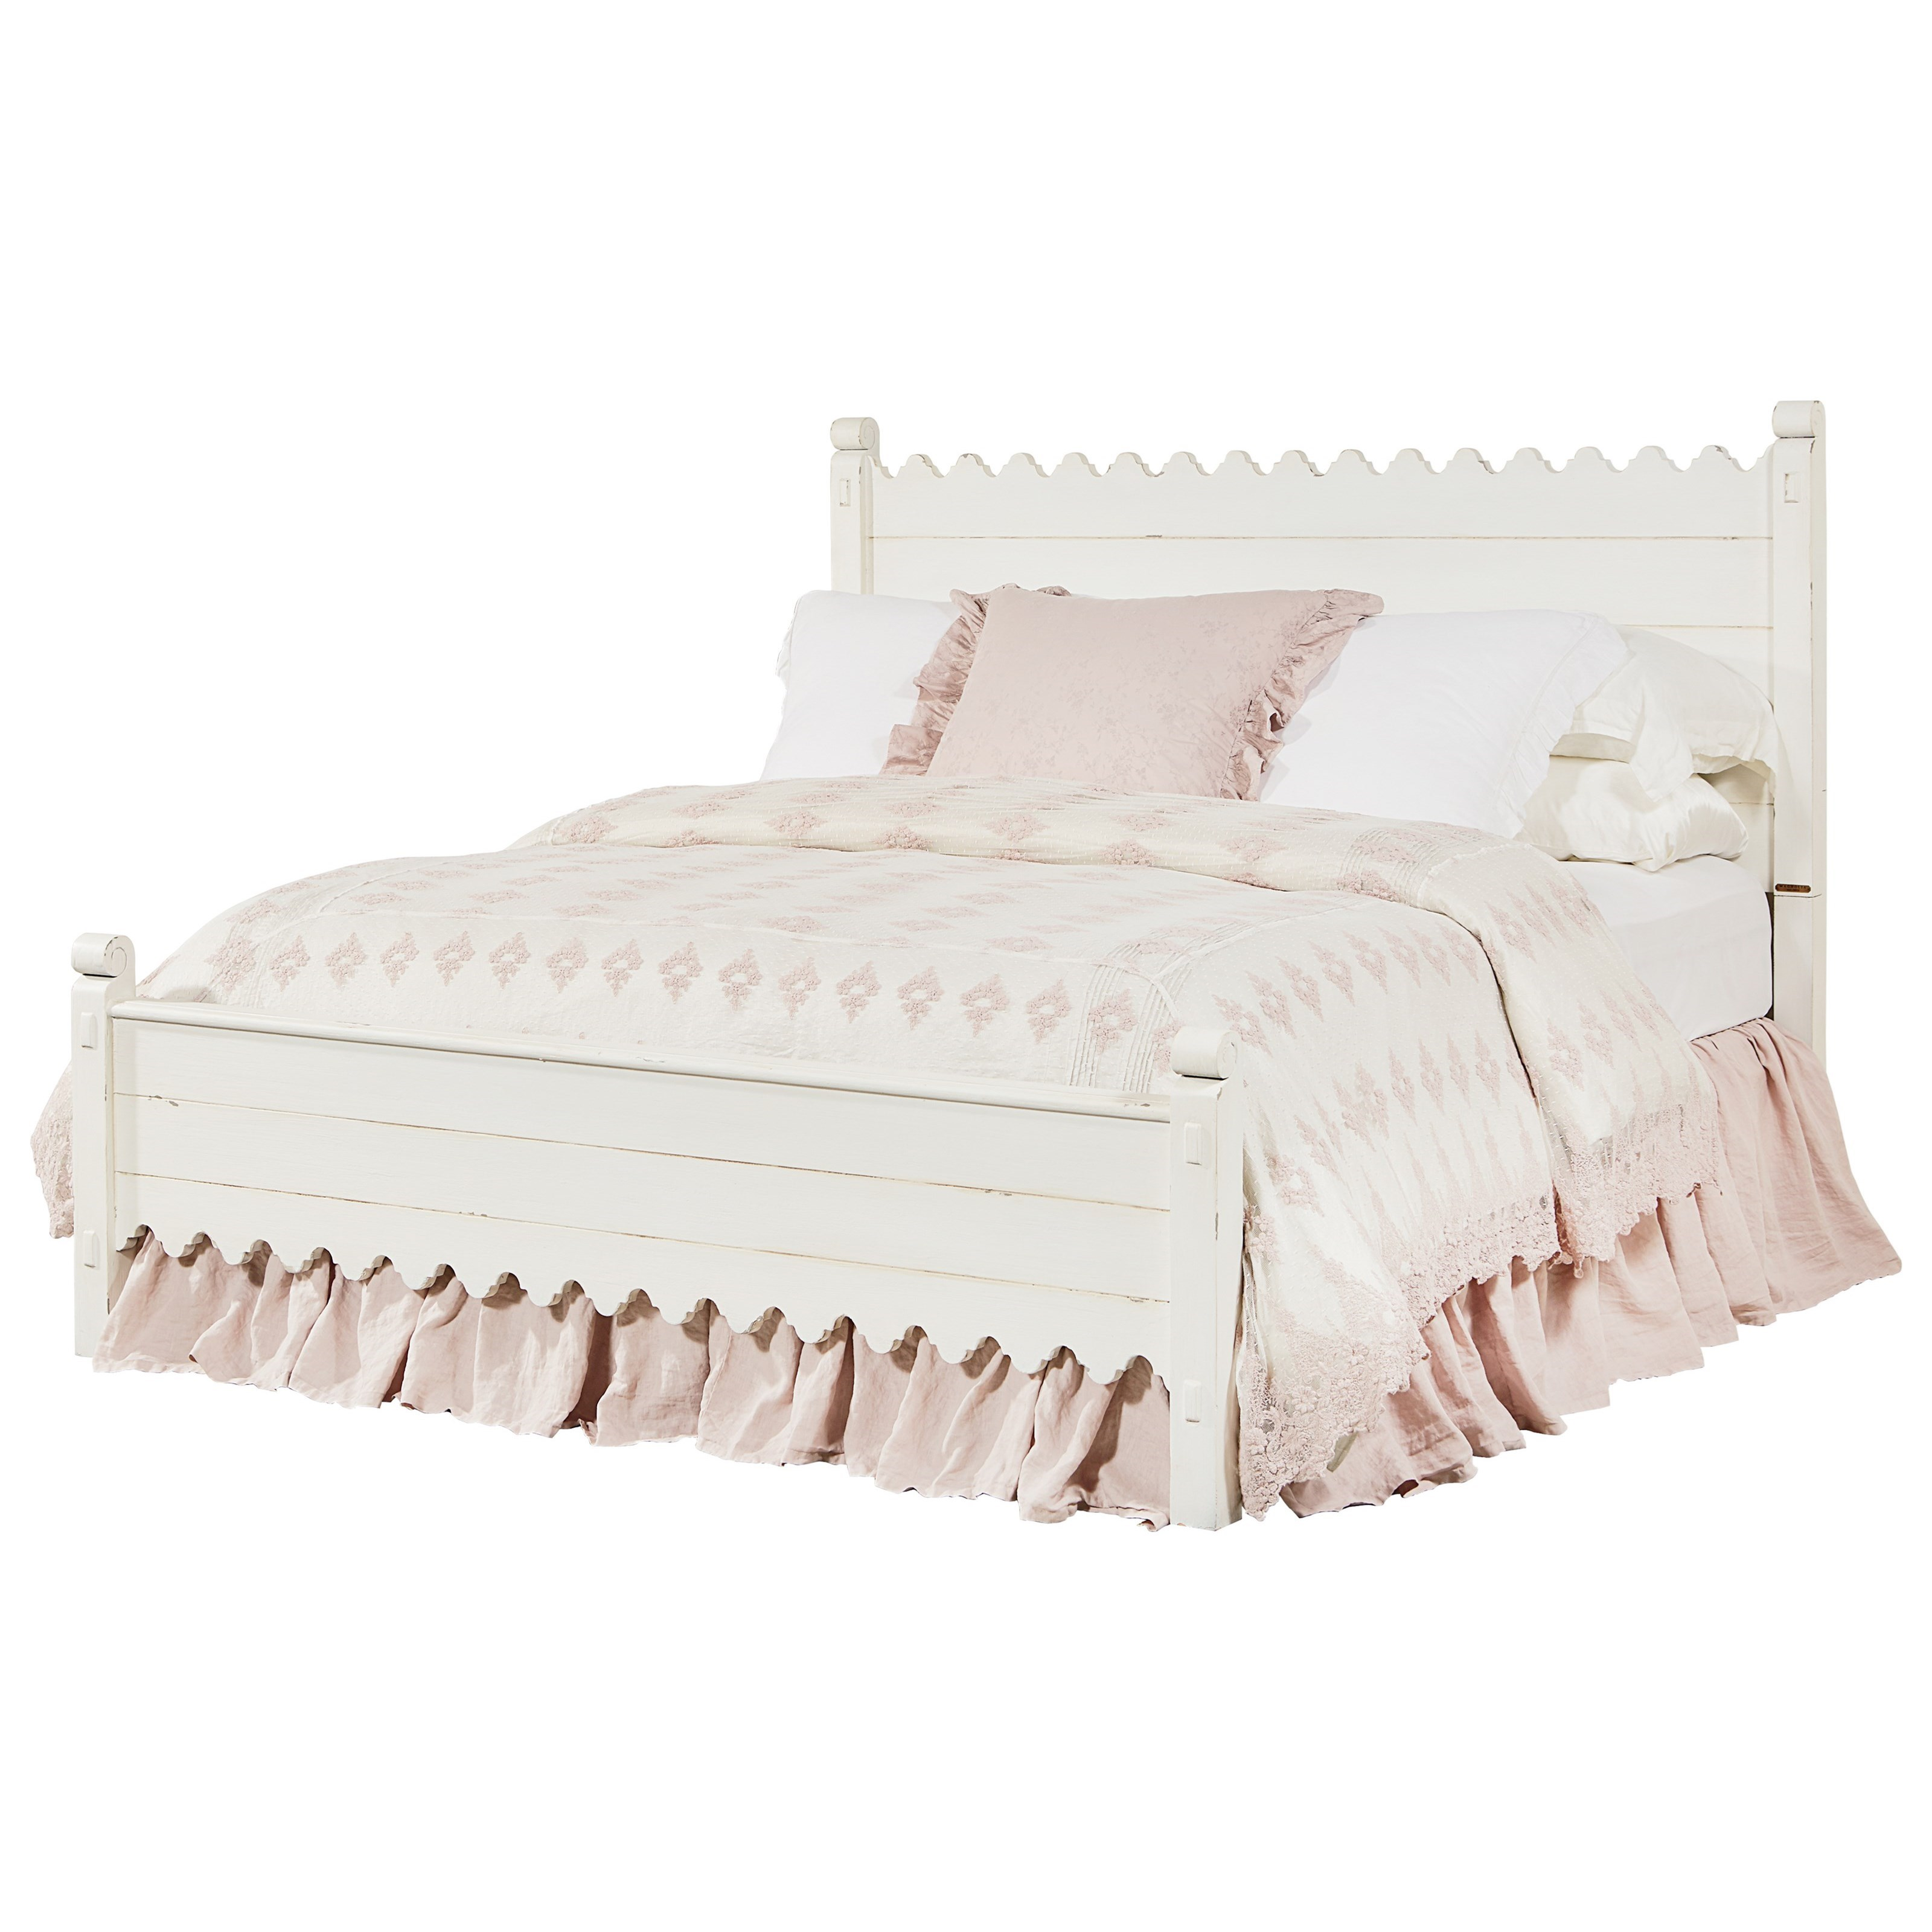 Magnolia home by joanna gaines farmhouse queen bed with for Home furniture beds